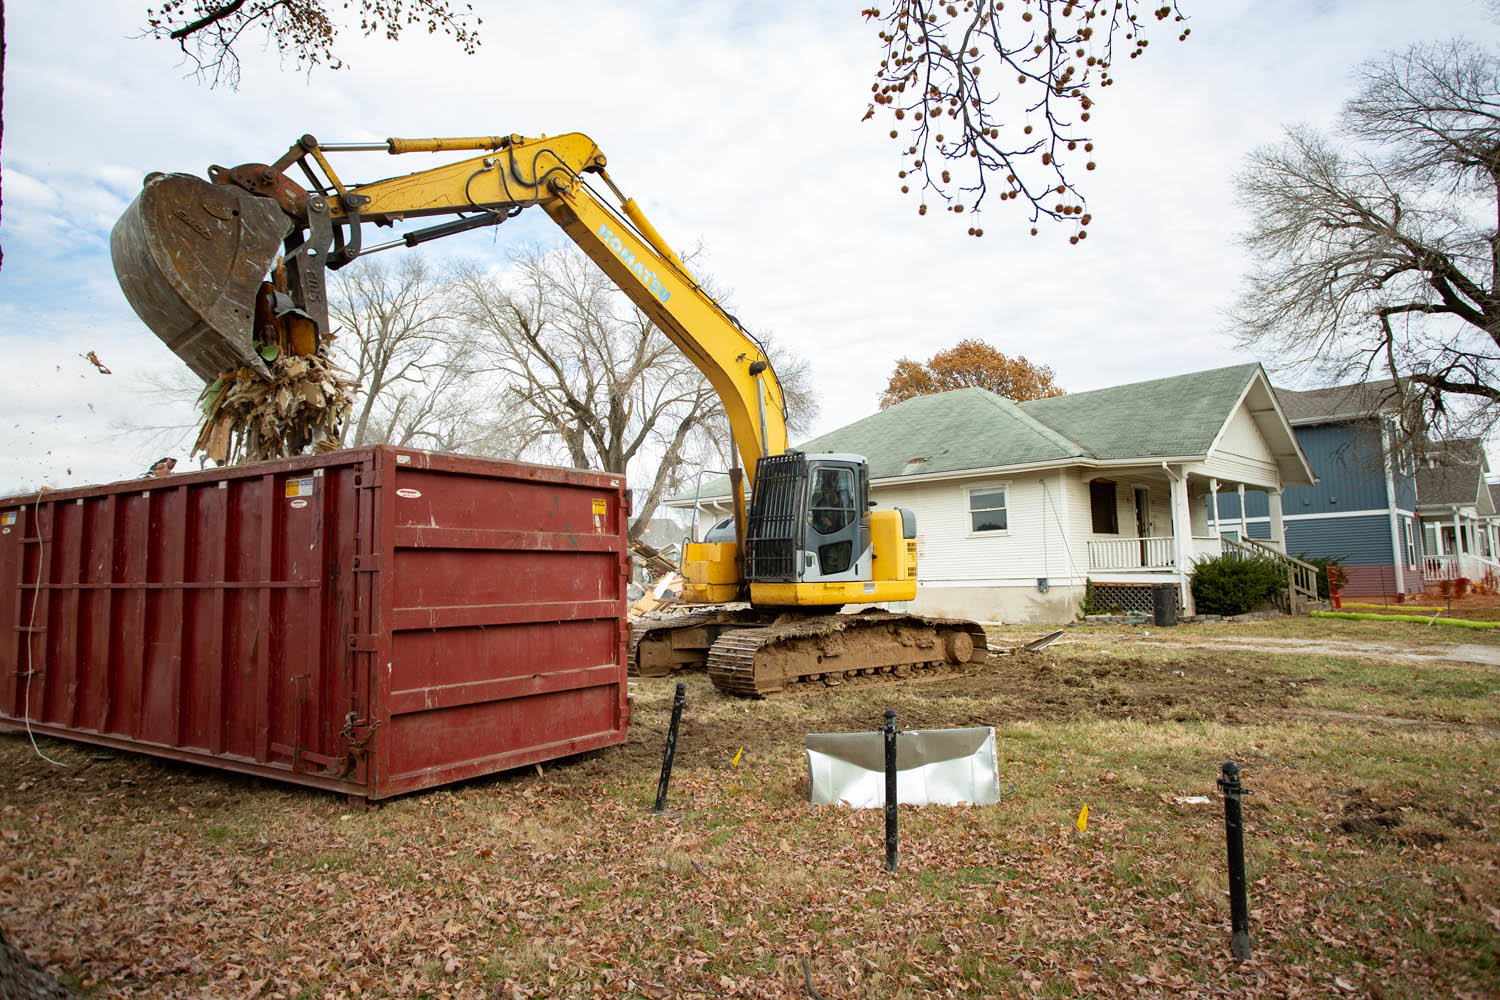 Several houses on East Cherry Street are being demolished to accommodate a residential development.